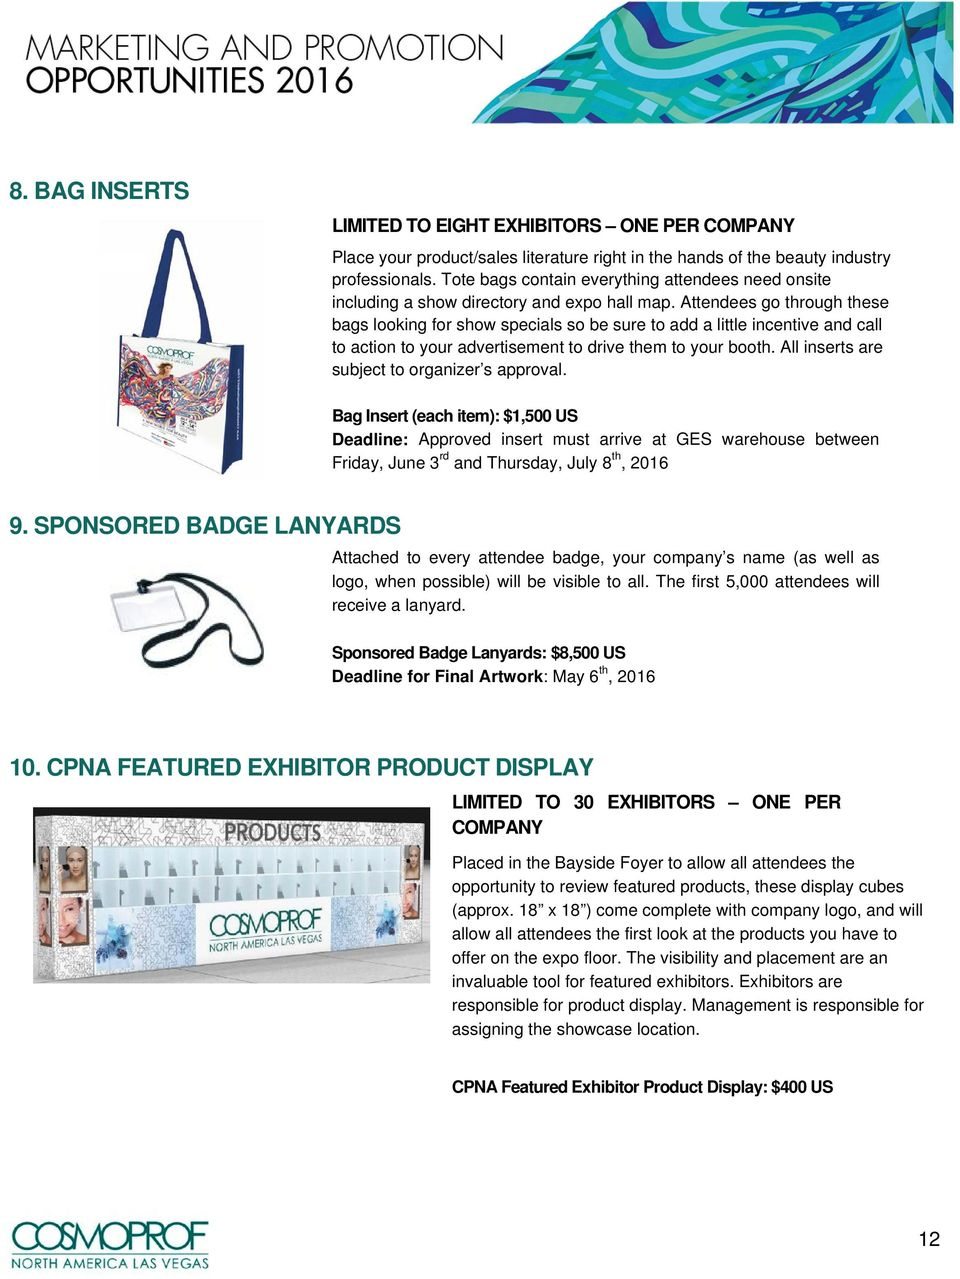 Attendees go through these bags looking for show specials so be sure to add a little incentive and call to action to your advertisement to drive them to your booth.